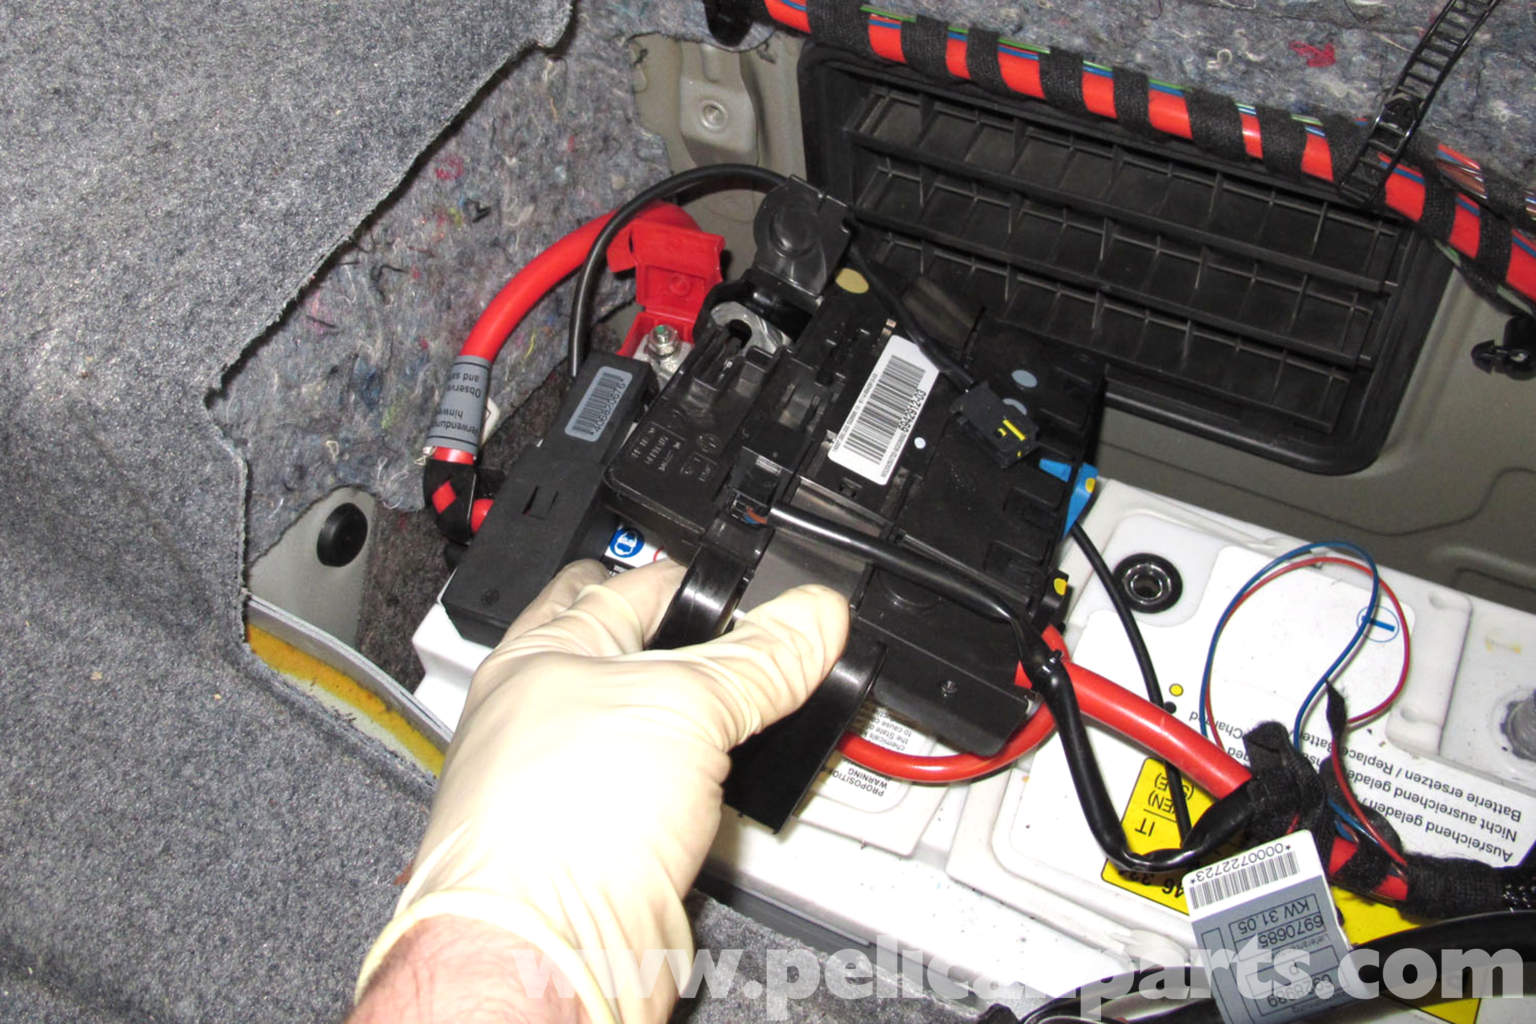 2005 e46 m3 fuse box bmw e90 battery replacement e91 e92 e93 pelican